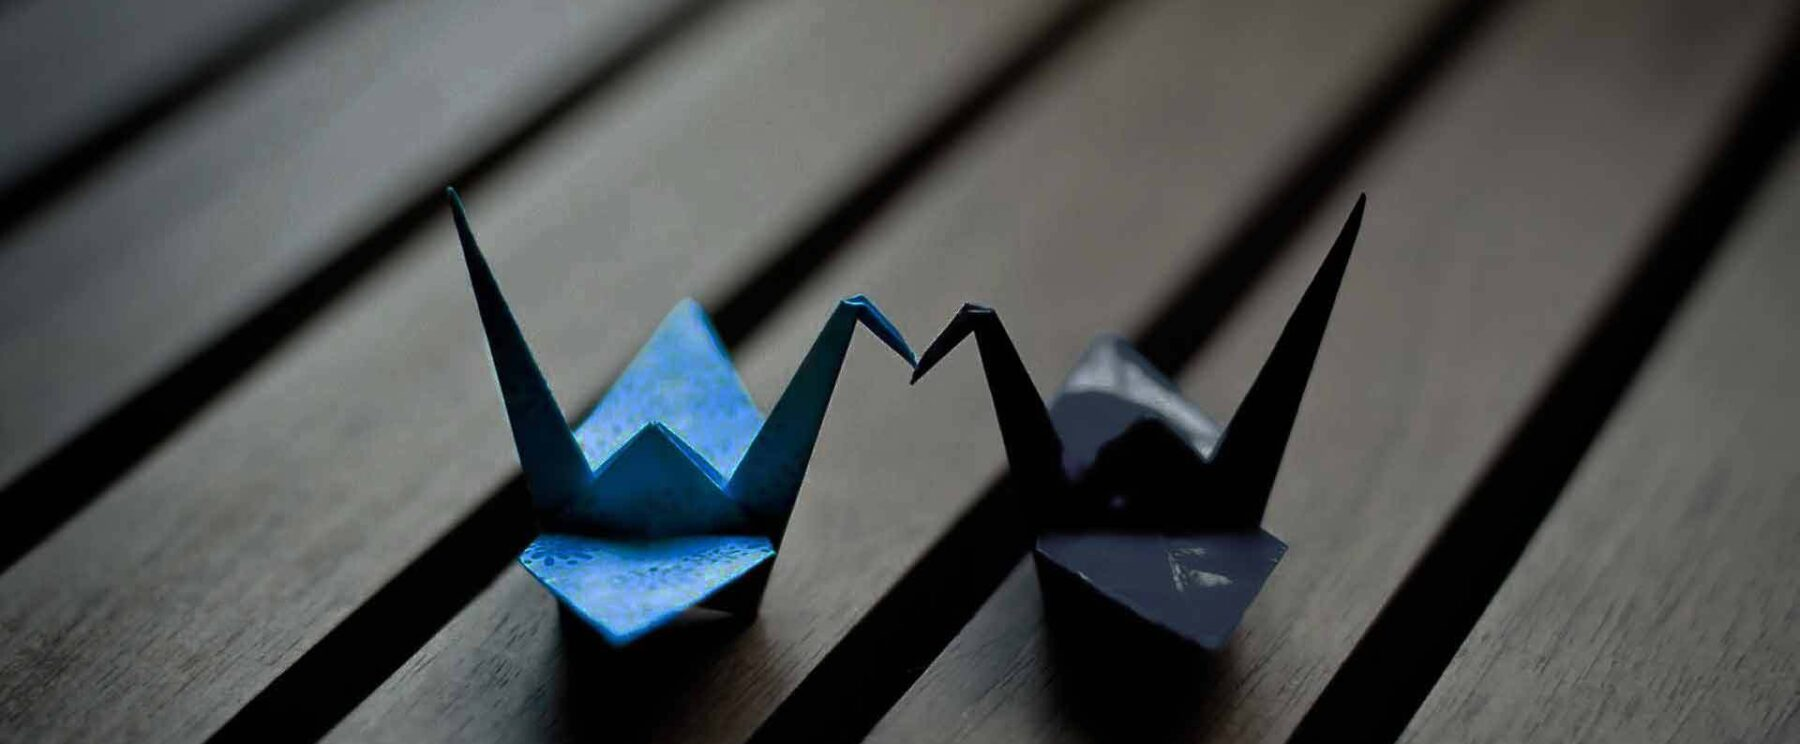 Blue Origami Digital - Agence & Studio